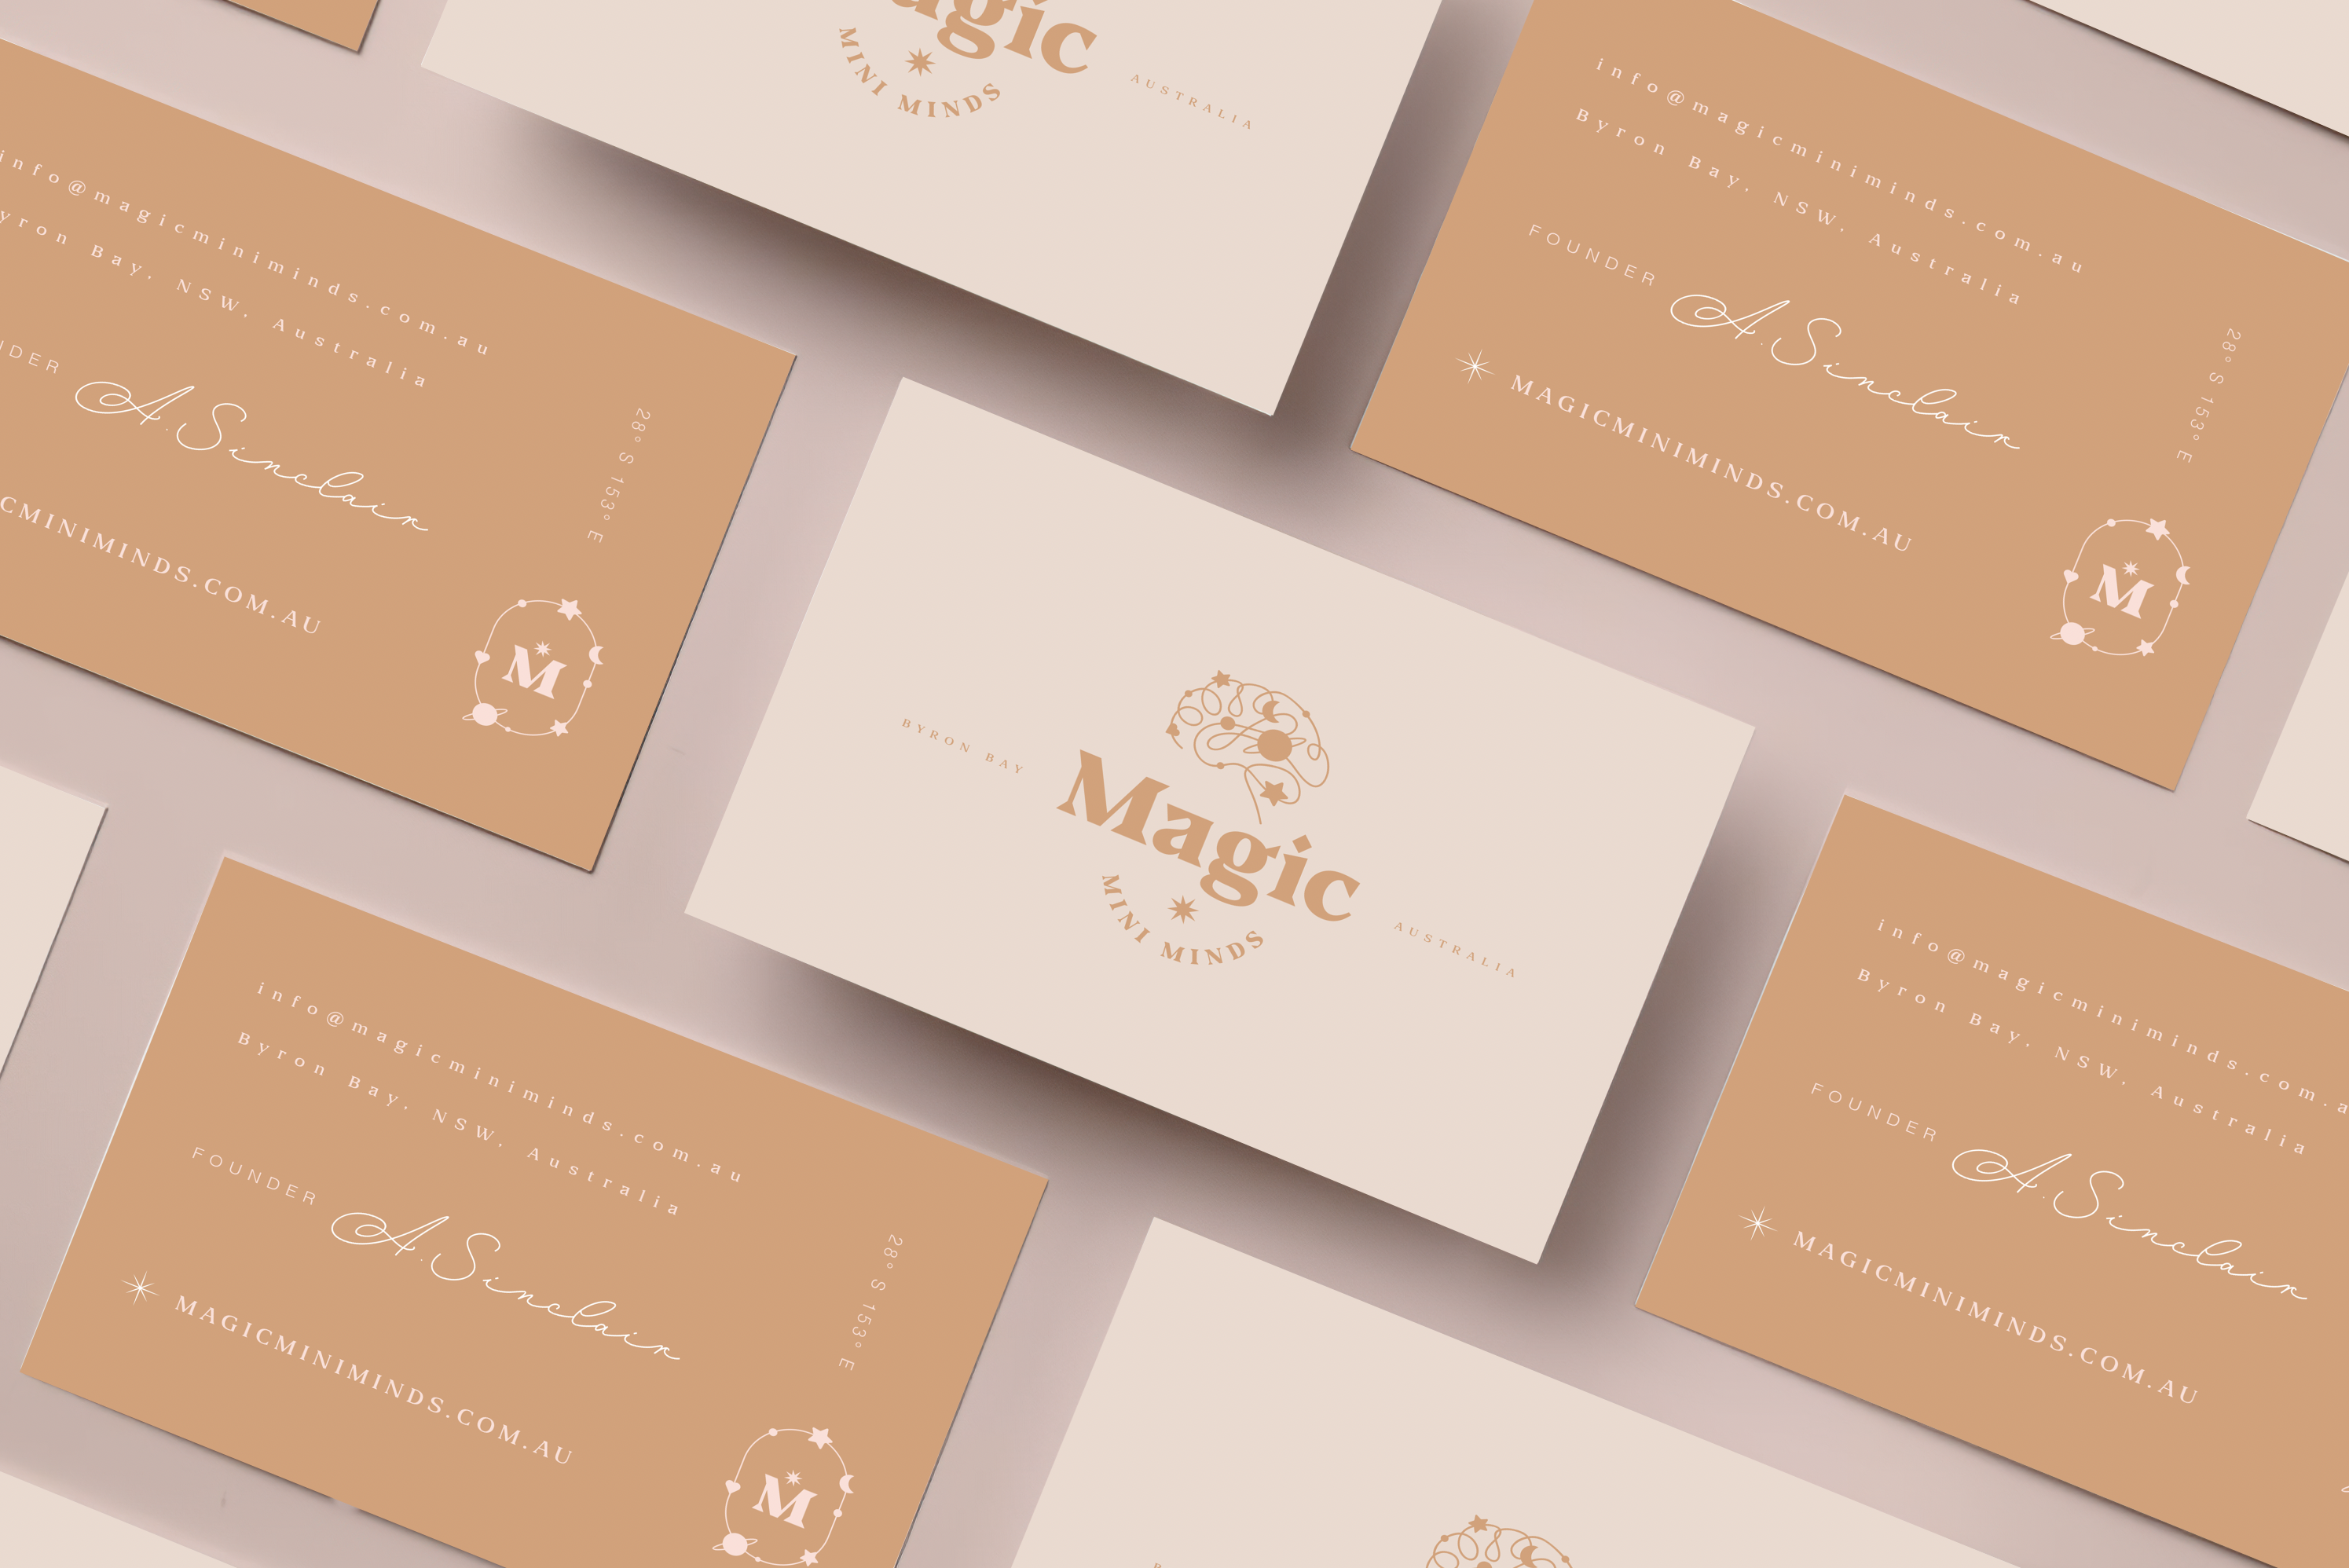 Magic Mini Minds business cards